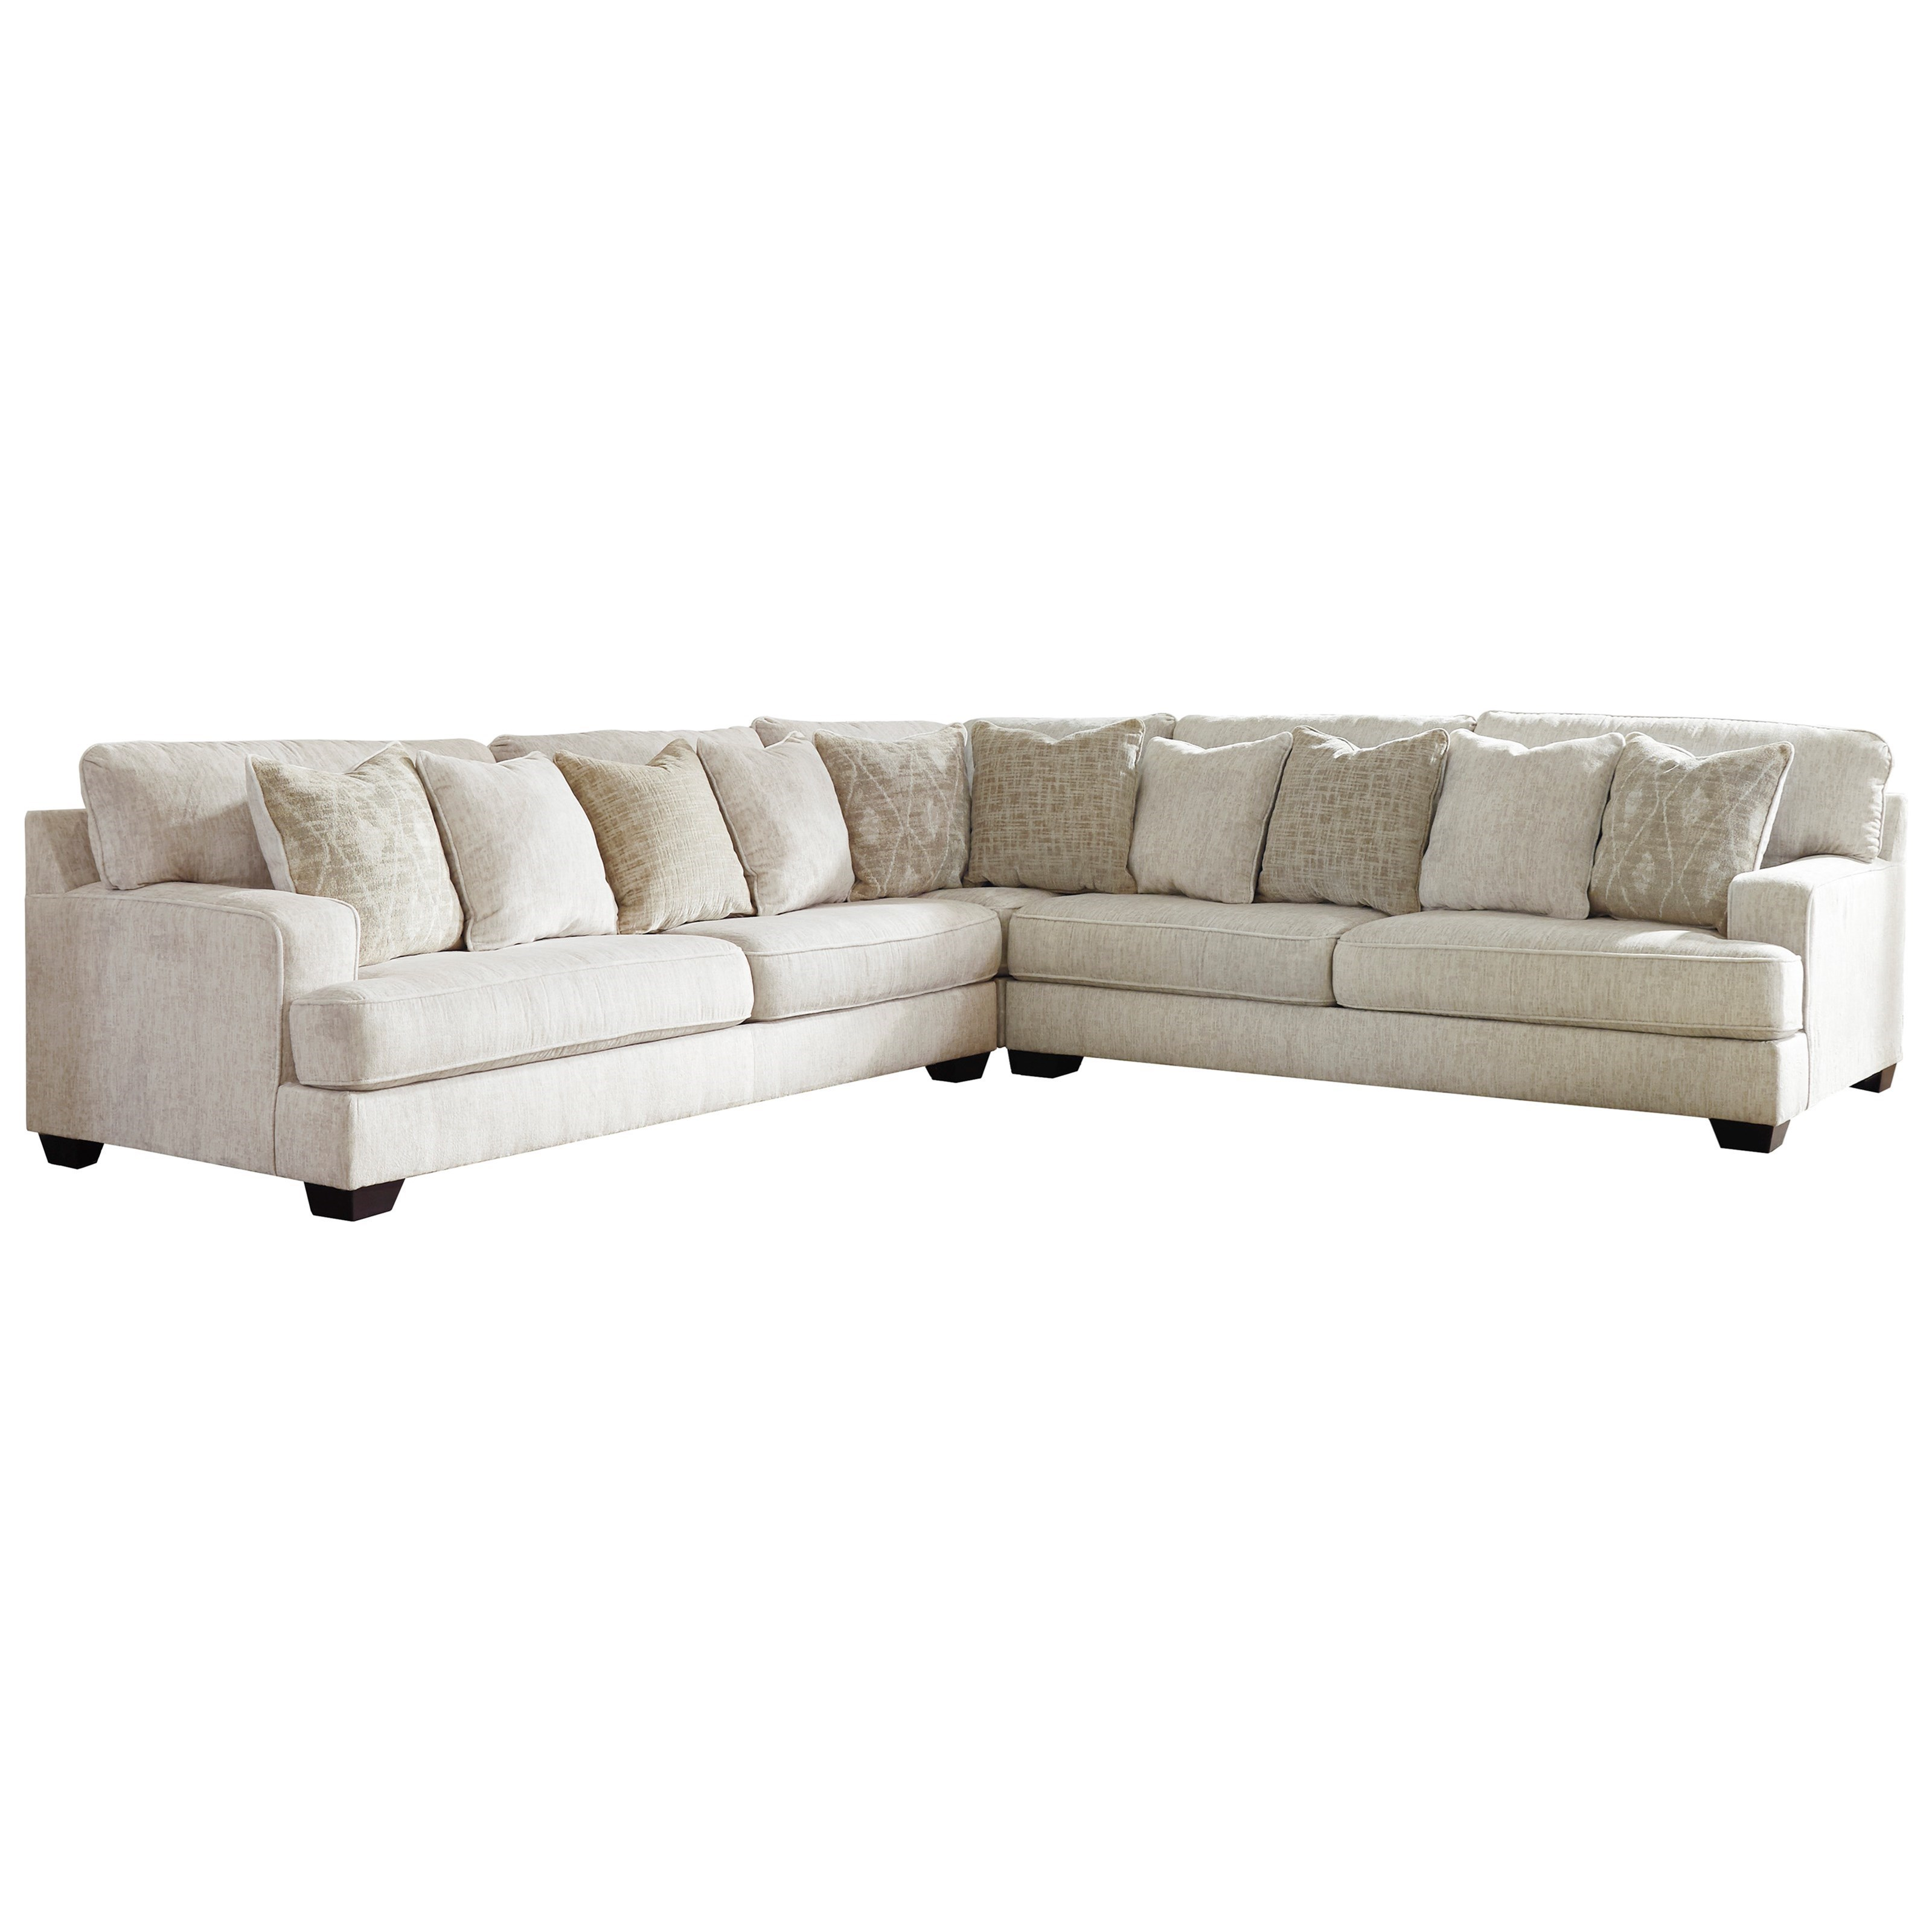 Rawcliffe 3-Piece Sectional by Signature Design by Ashley at Beck's Furniture